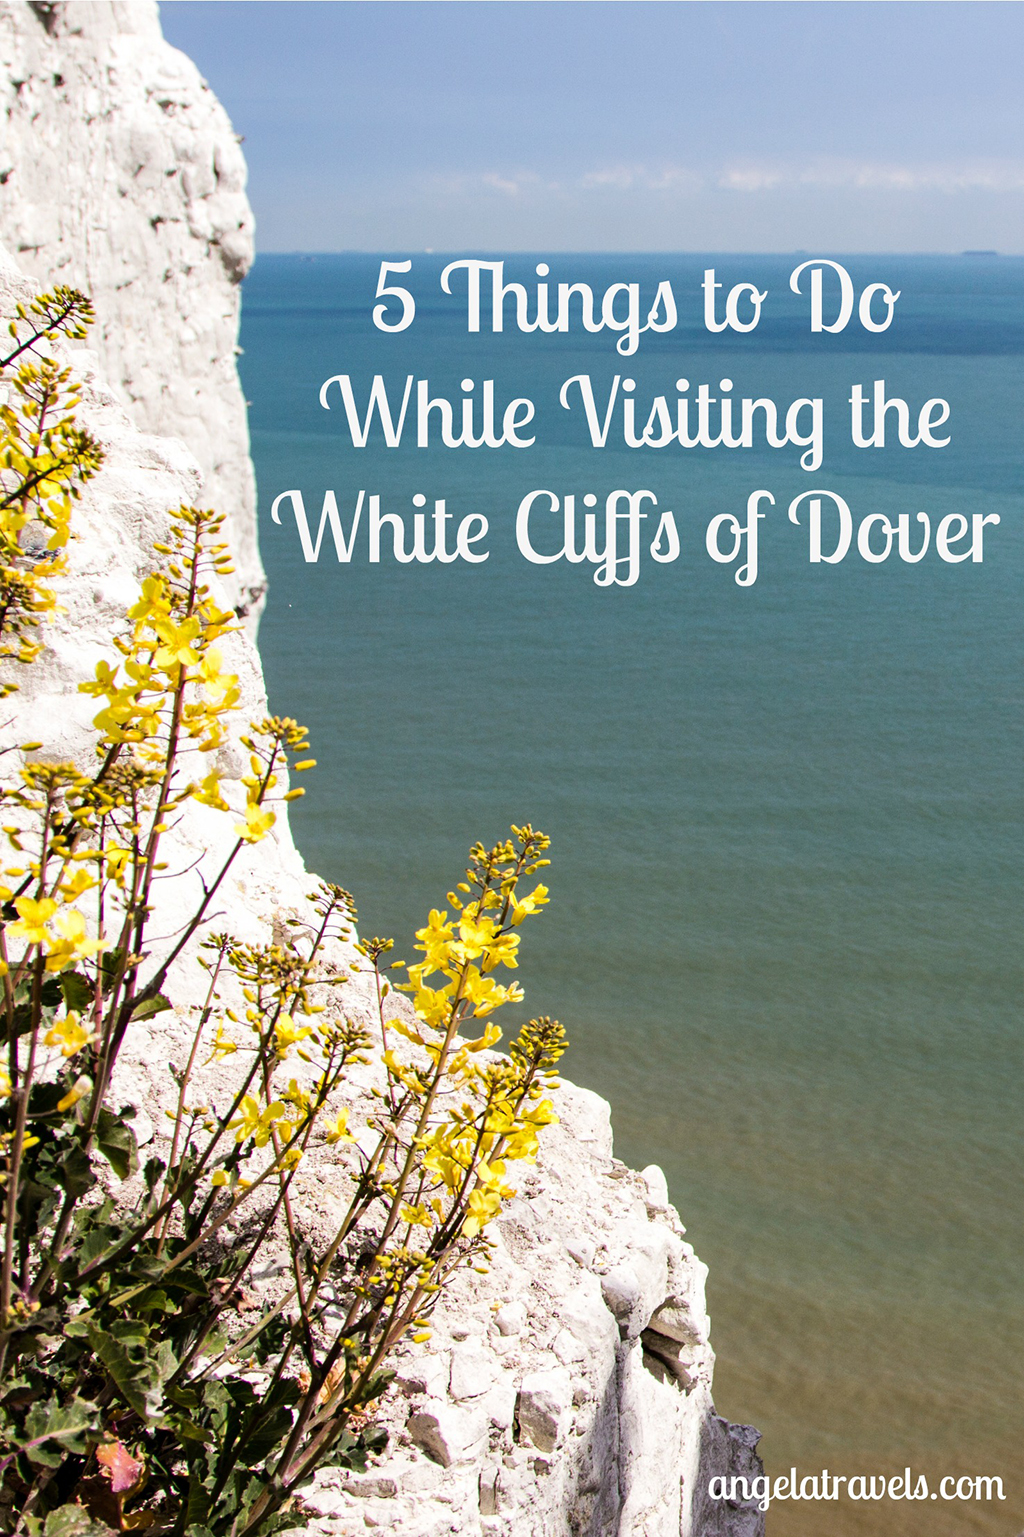 Pin image for 5 Things to Do While Visiting the White Cliffs of Dover